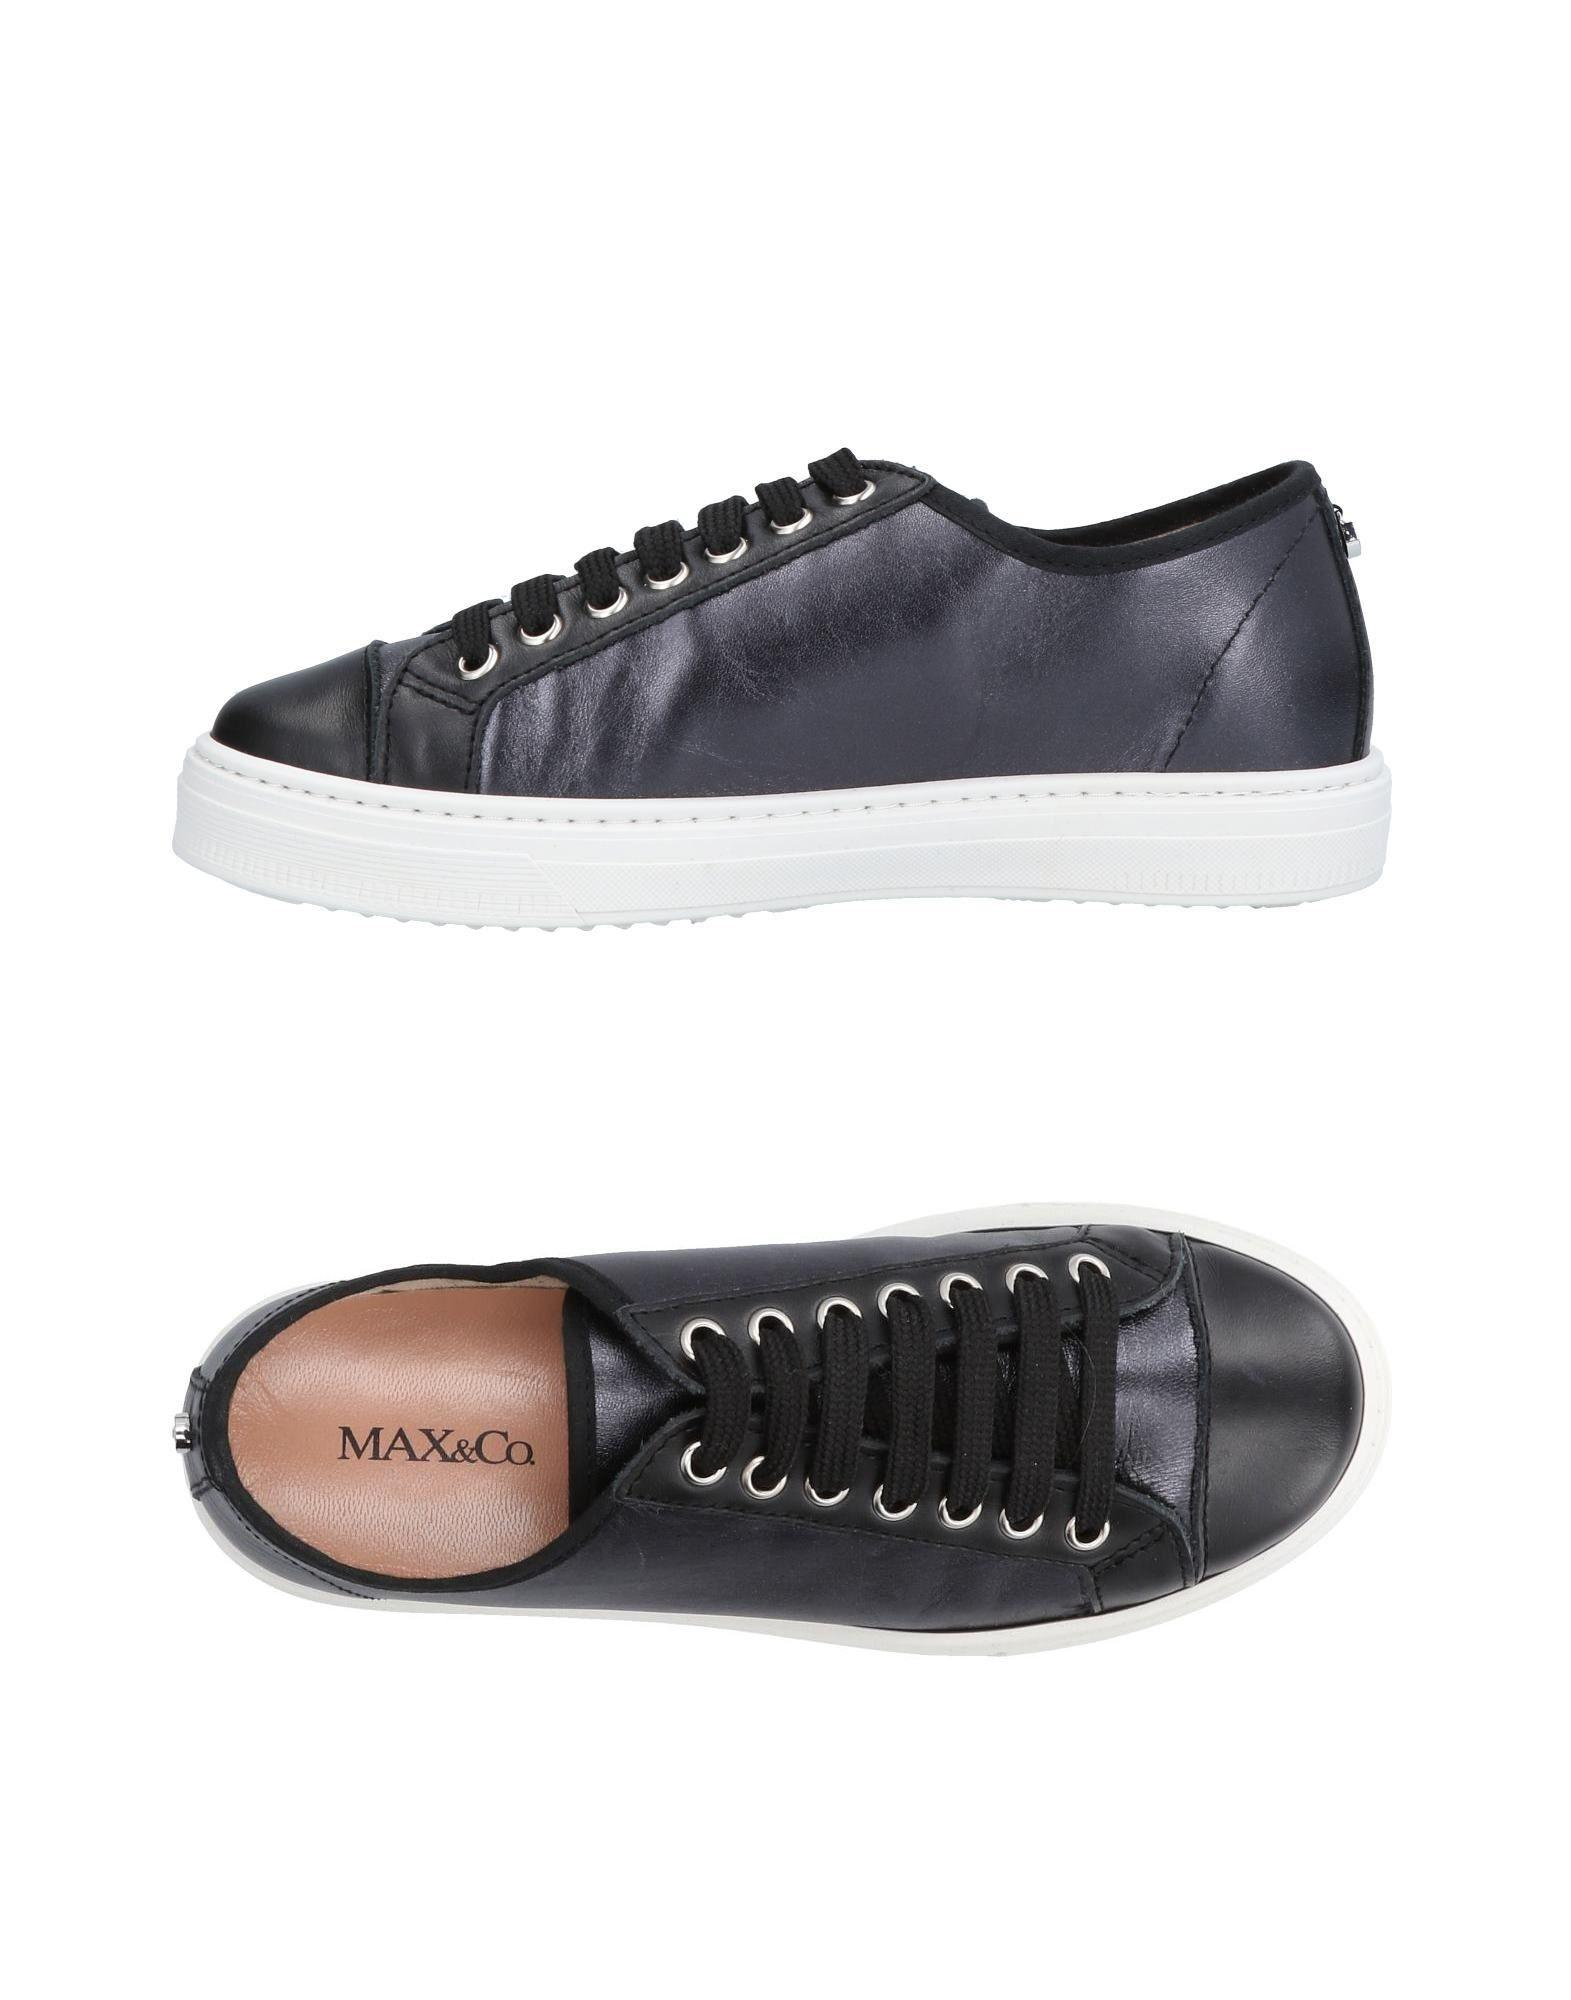 Max & Co. Max & Co. Low-tops & Sneakers Bas-tops Et Chaussures De Sport saVifKvY5w